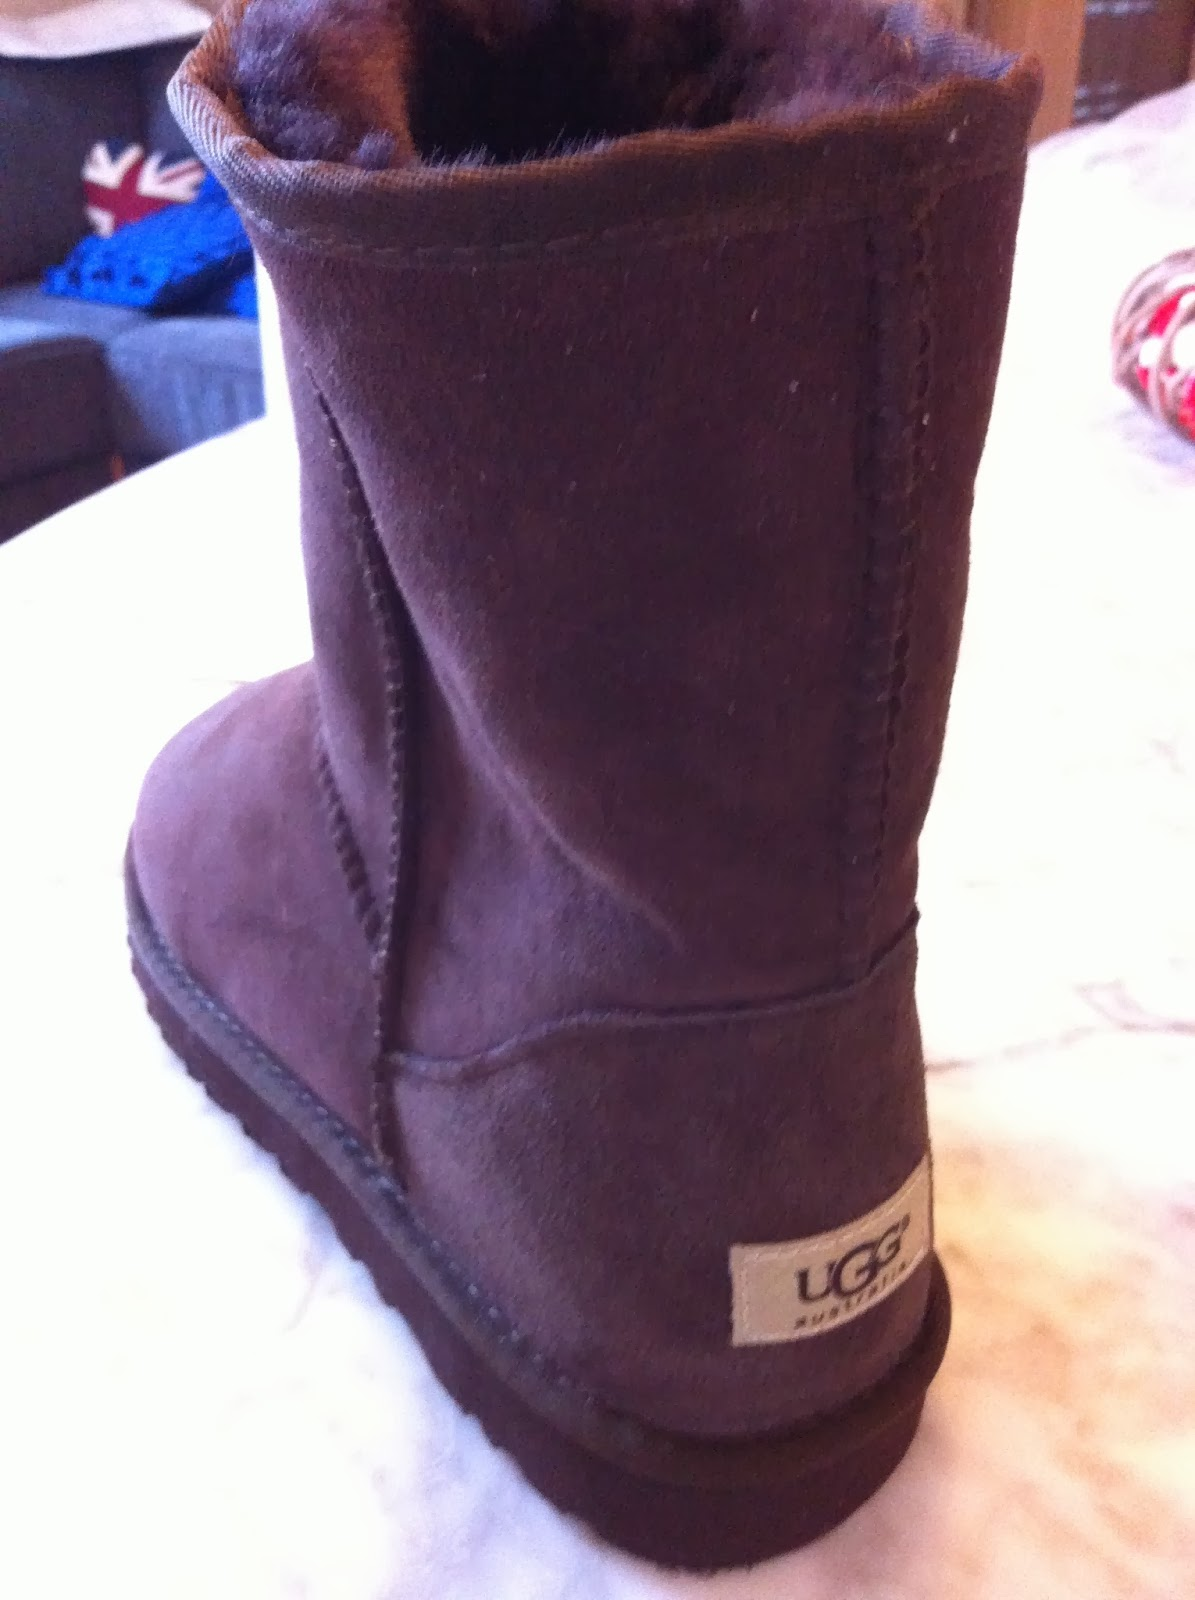 ugg australia counterfeit check